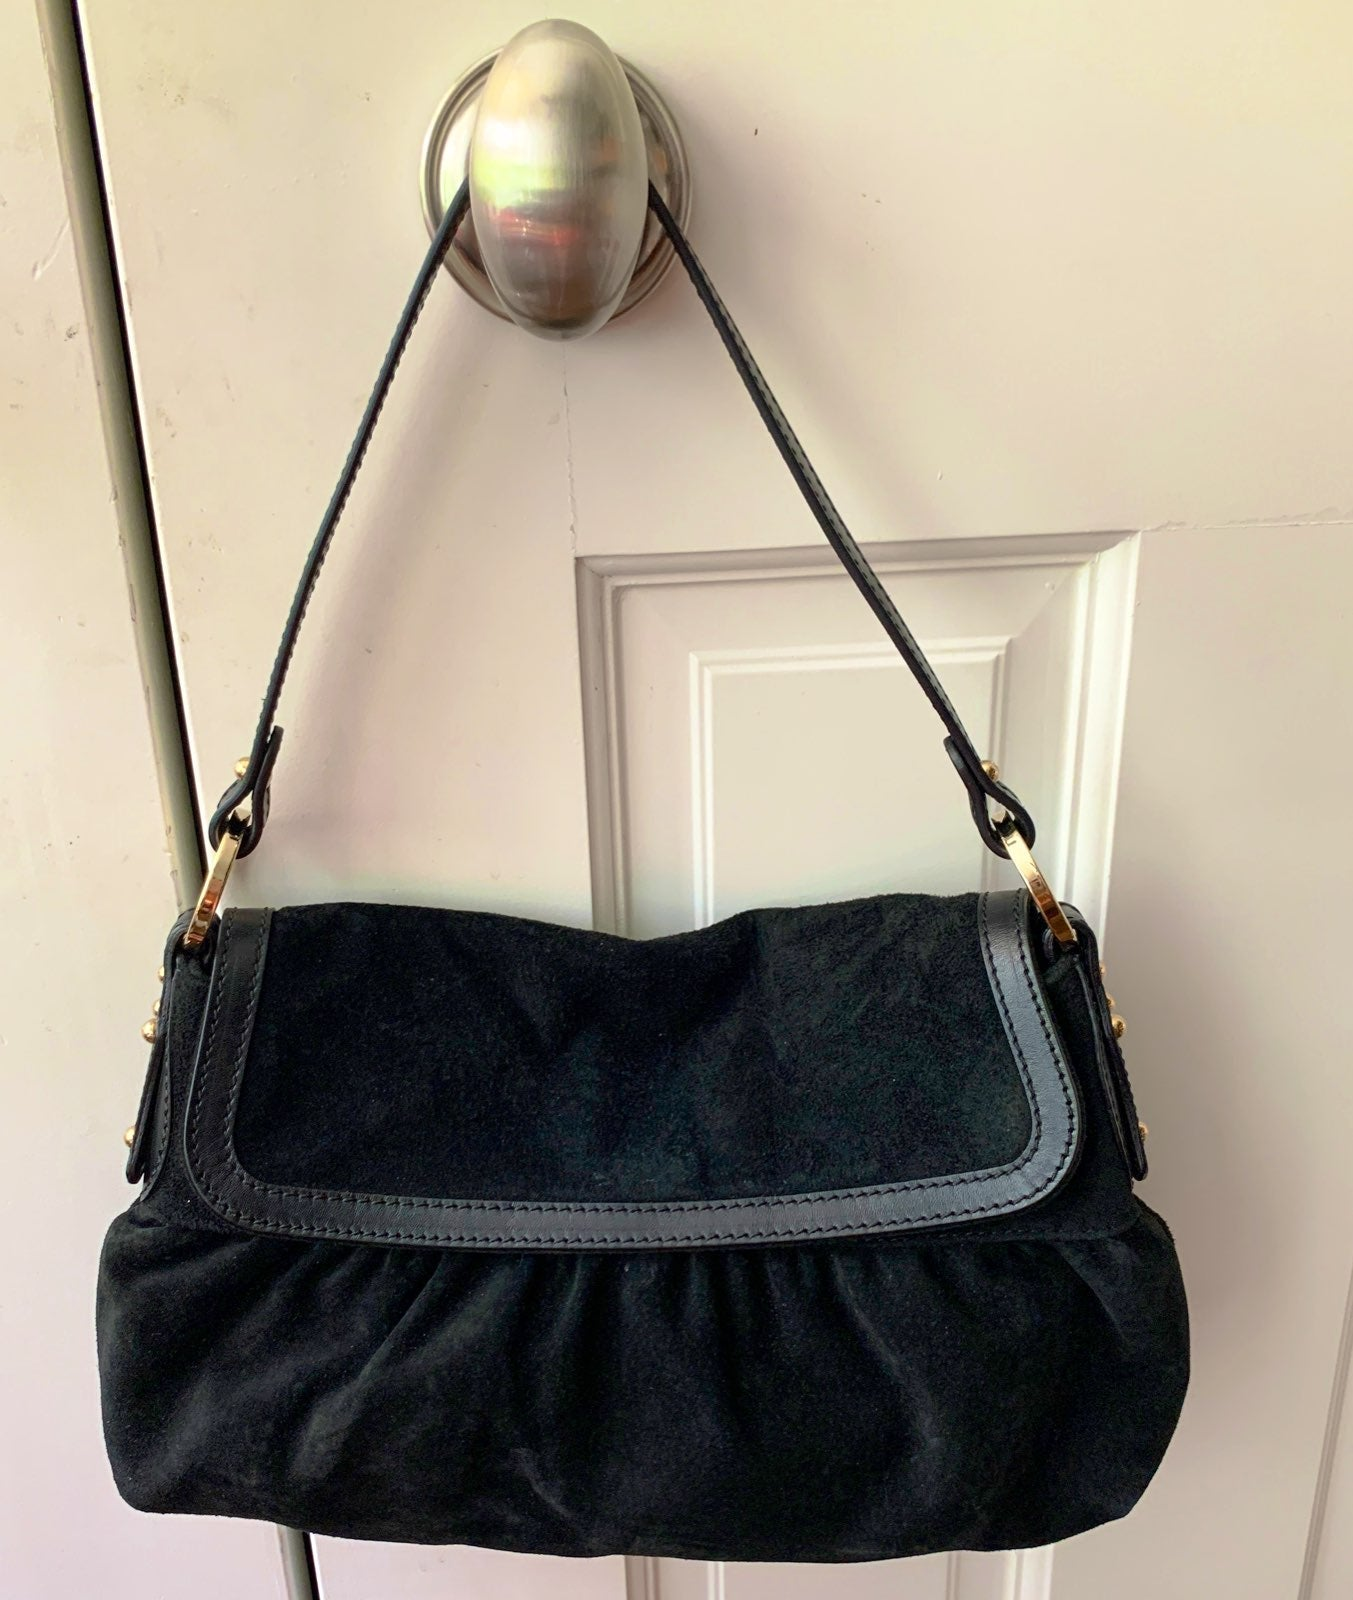 Fendi black velvet purse